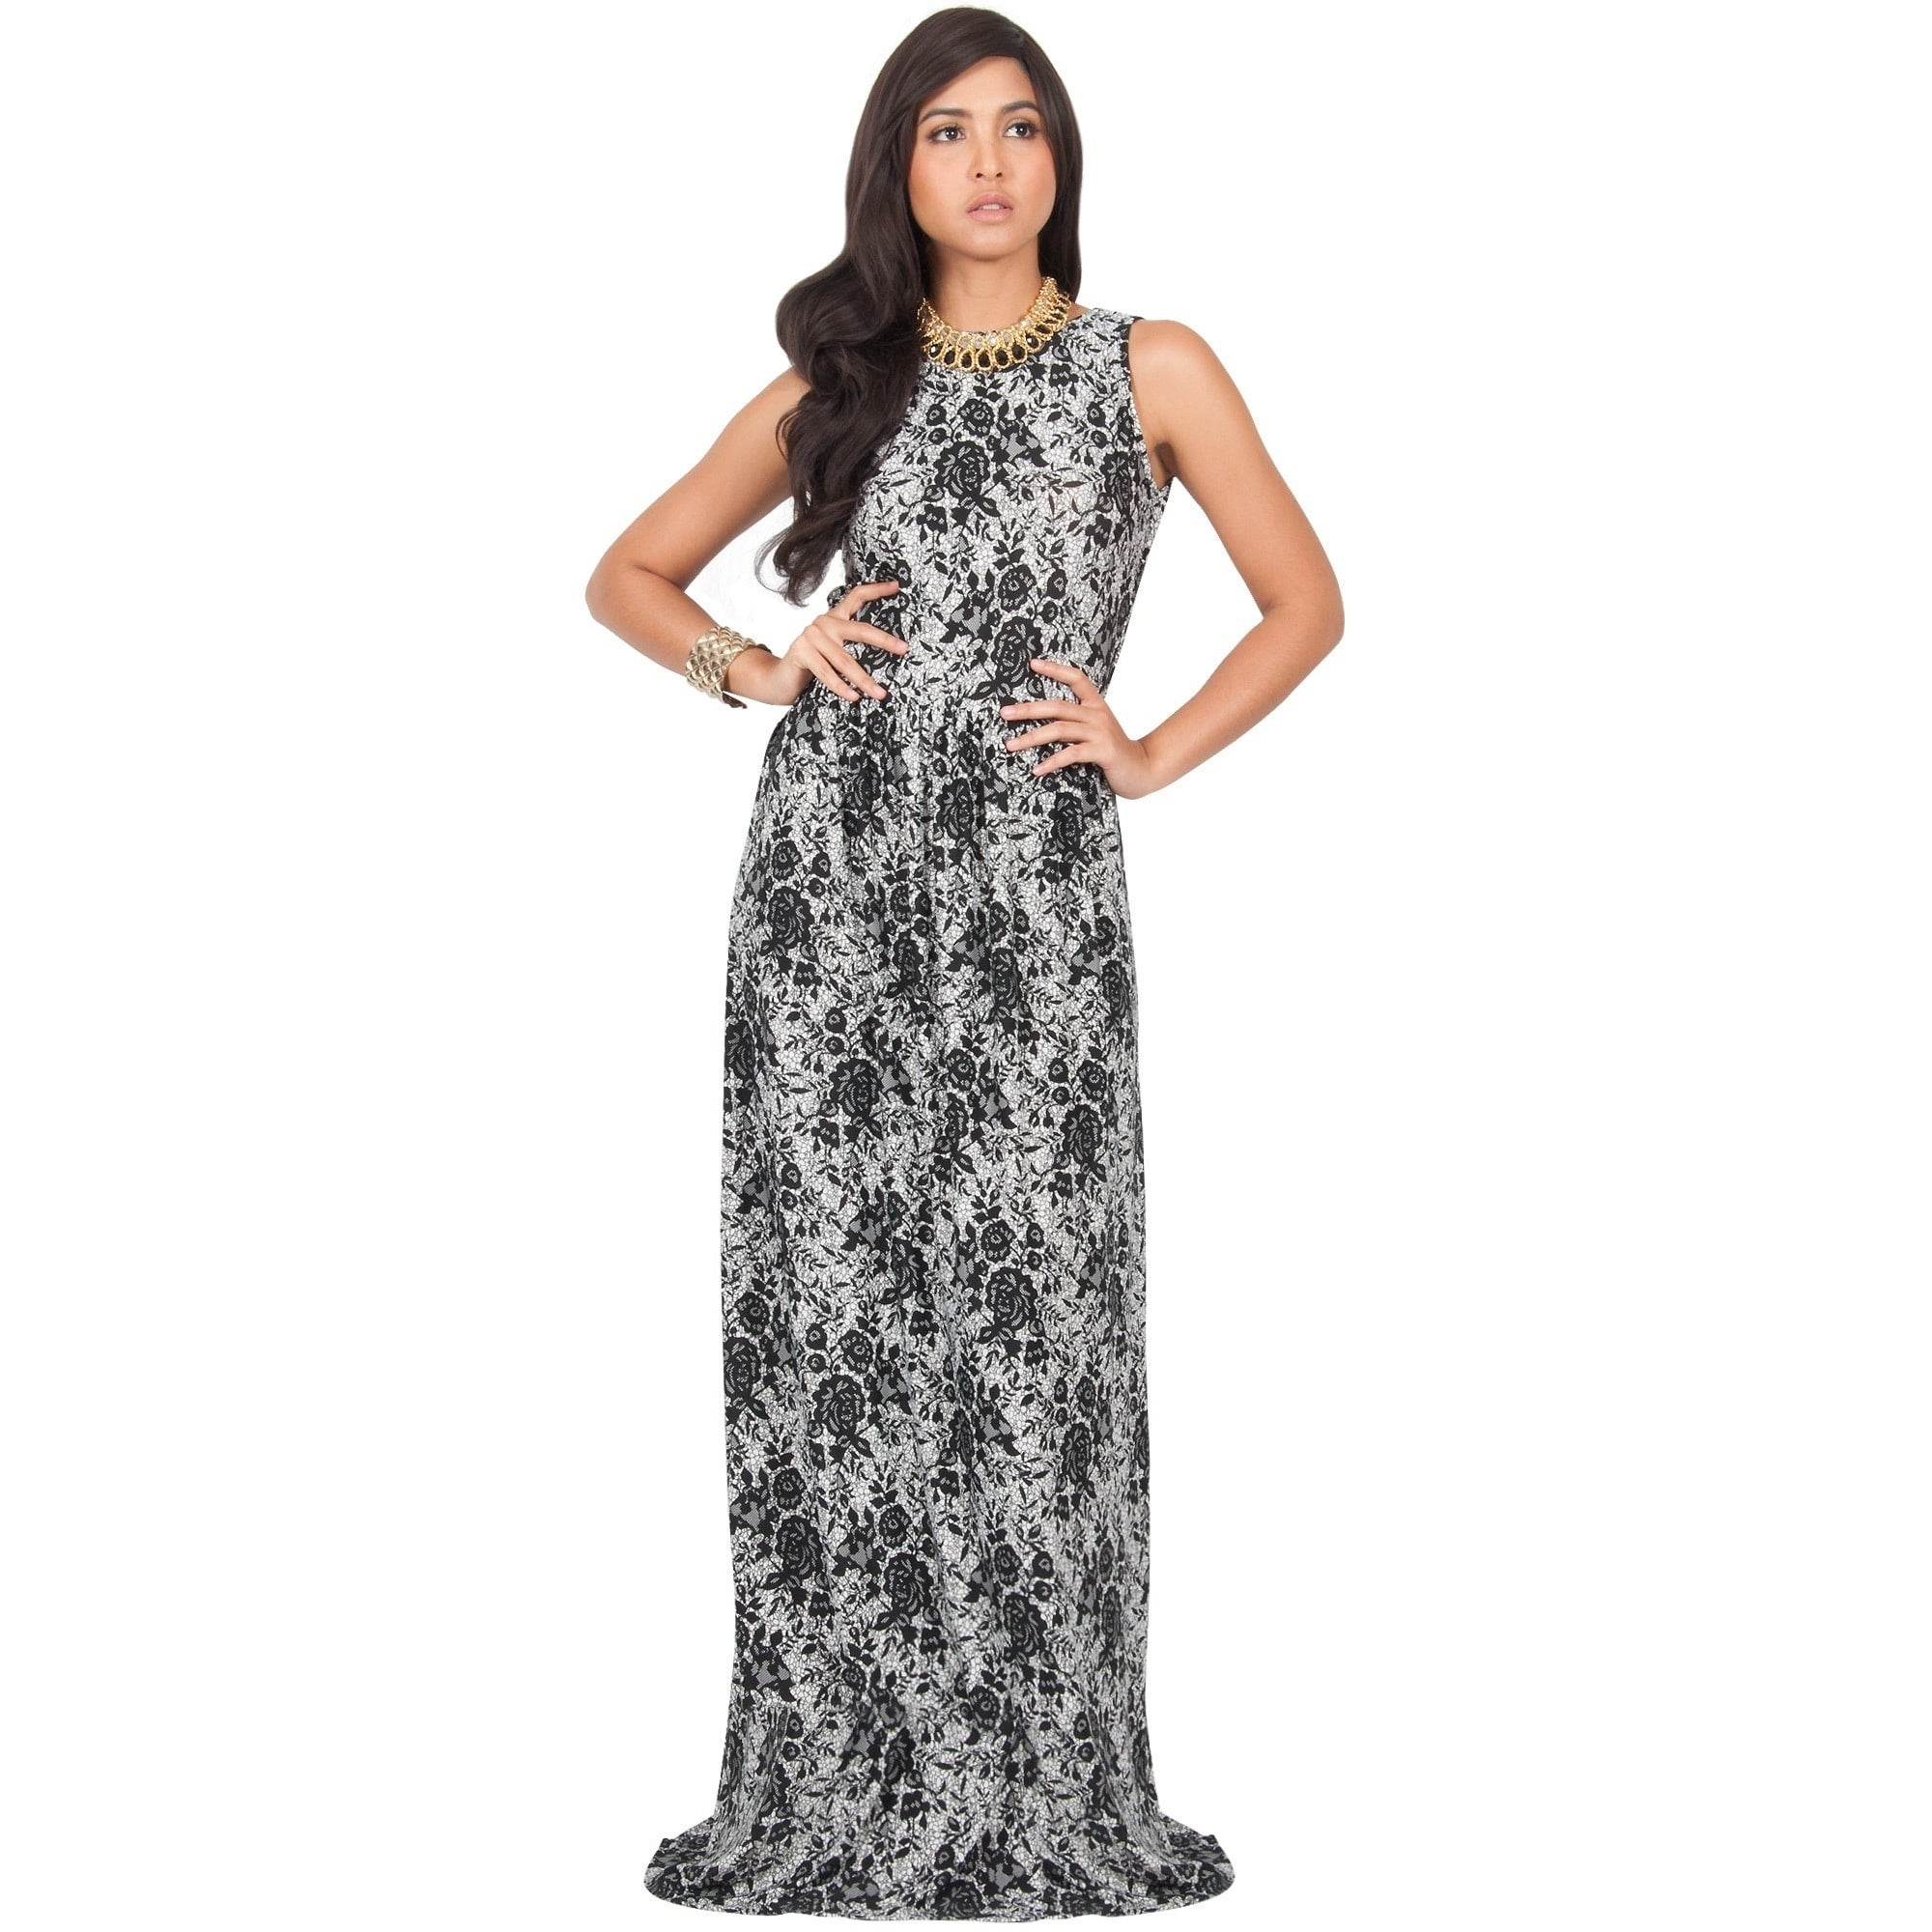 cc7f3eeddd1c KOH KOH Women s Summer Floral Prints Cocktail Vintage Sleeveless Long Maxi  Dress